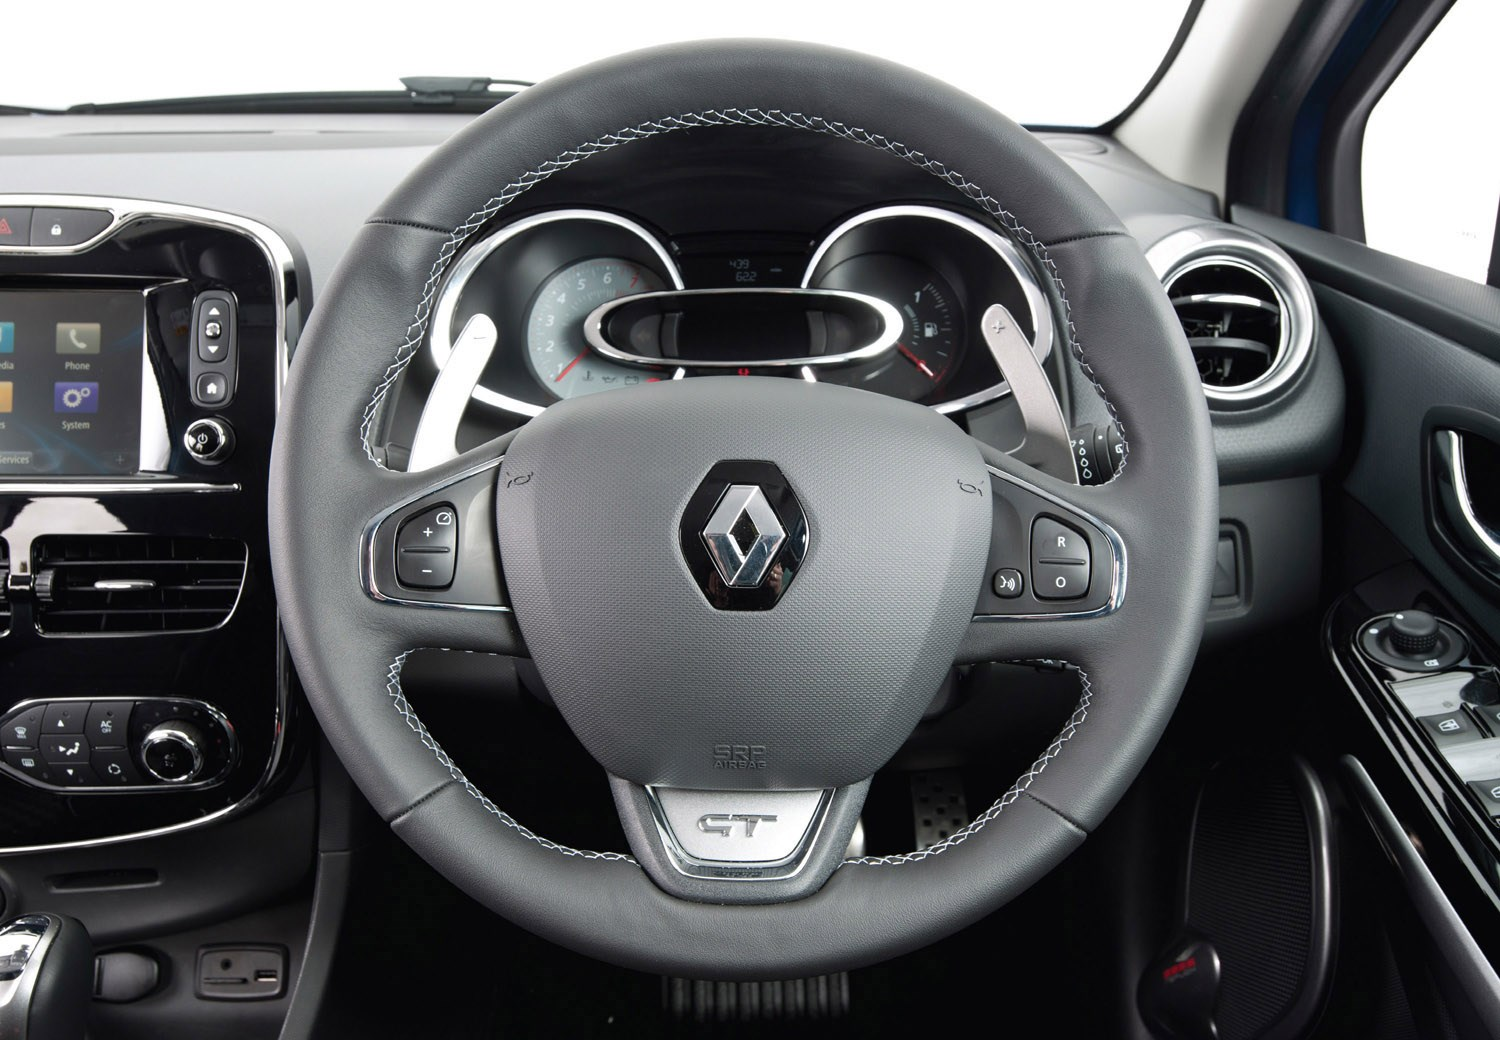 Renault Clio Review Features Practicality And Safety Parkers Skoda Fabia Estate Fuse Box Layout